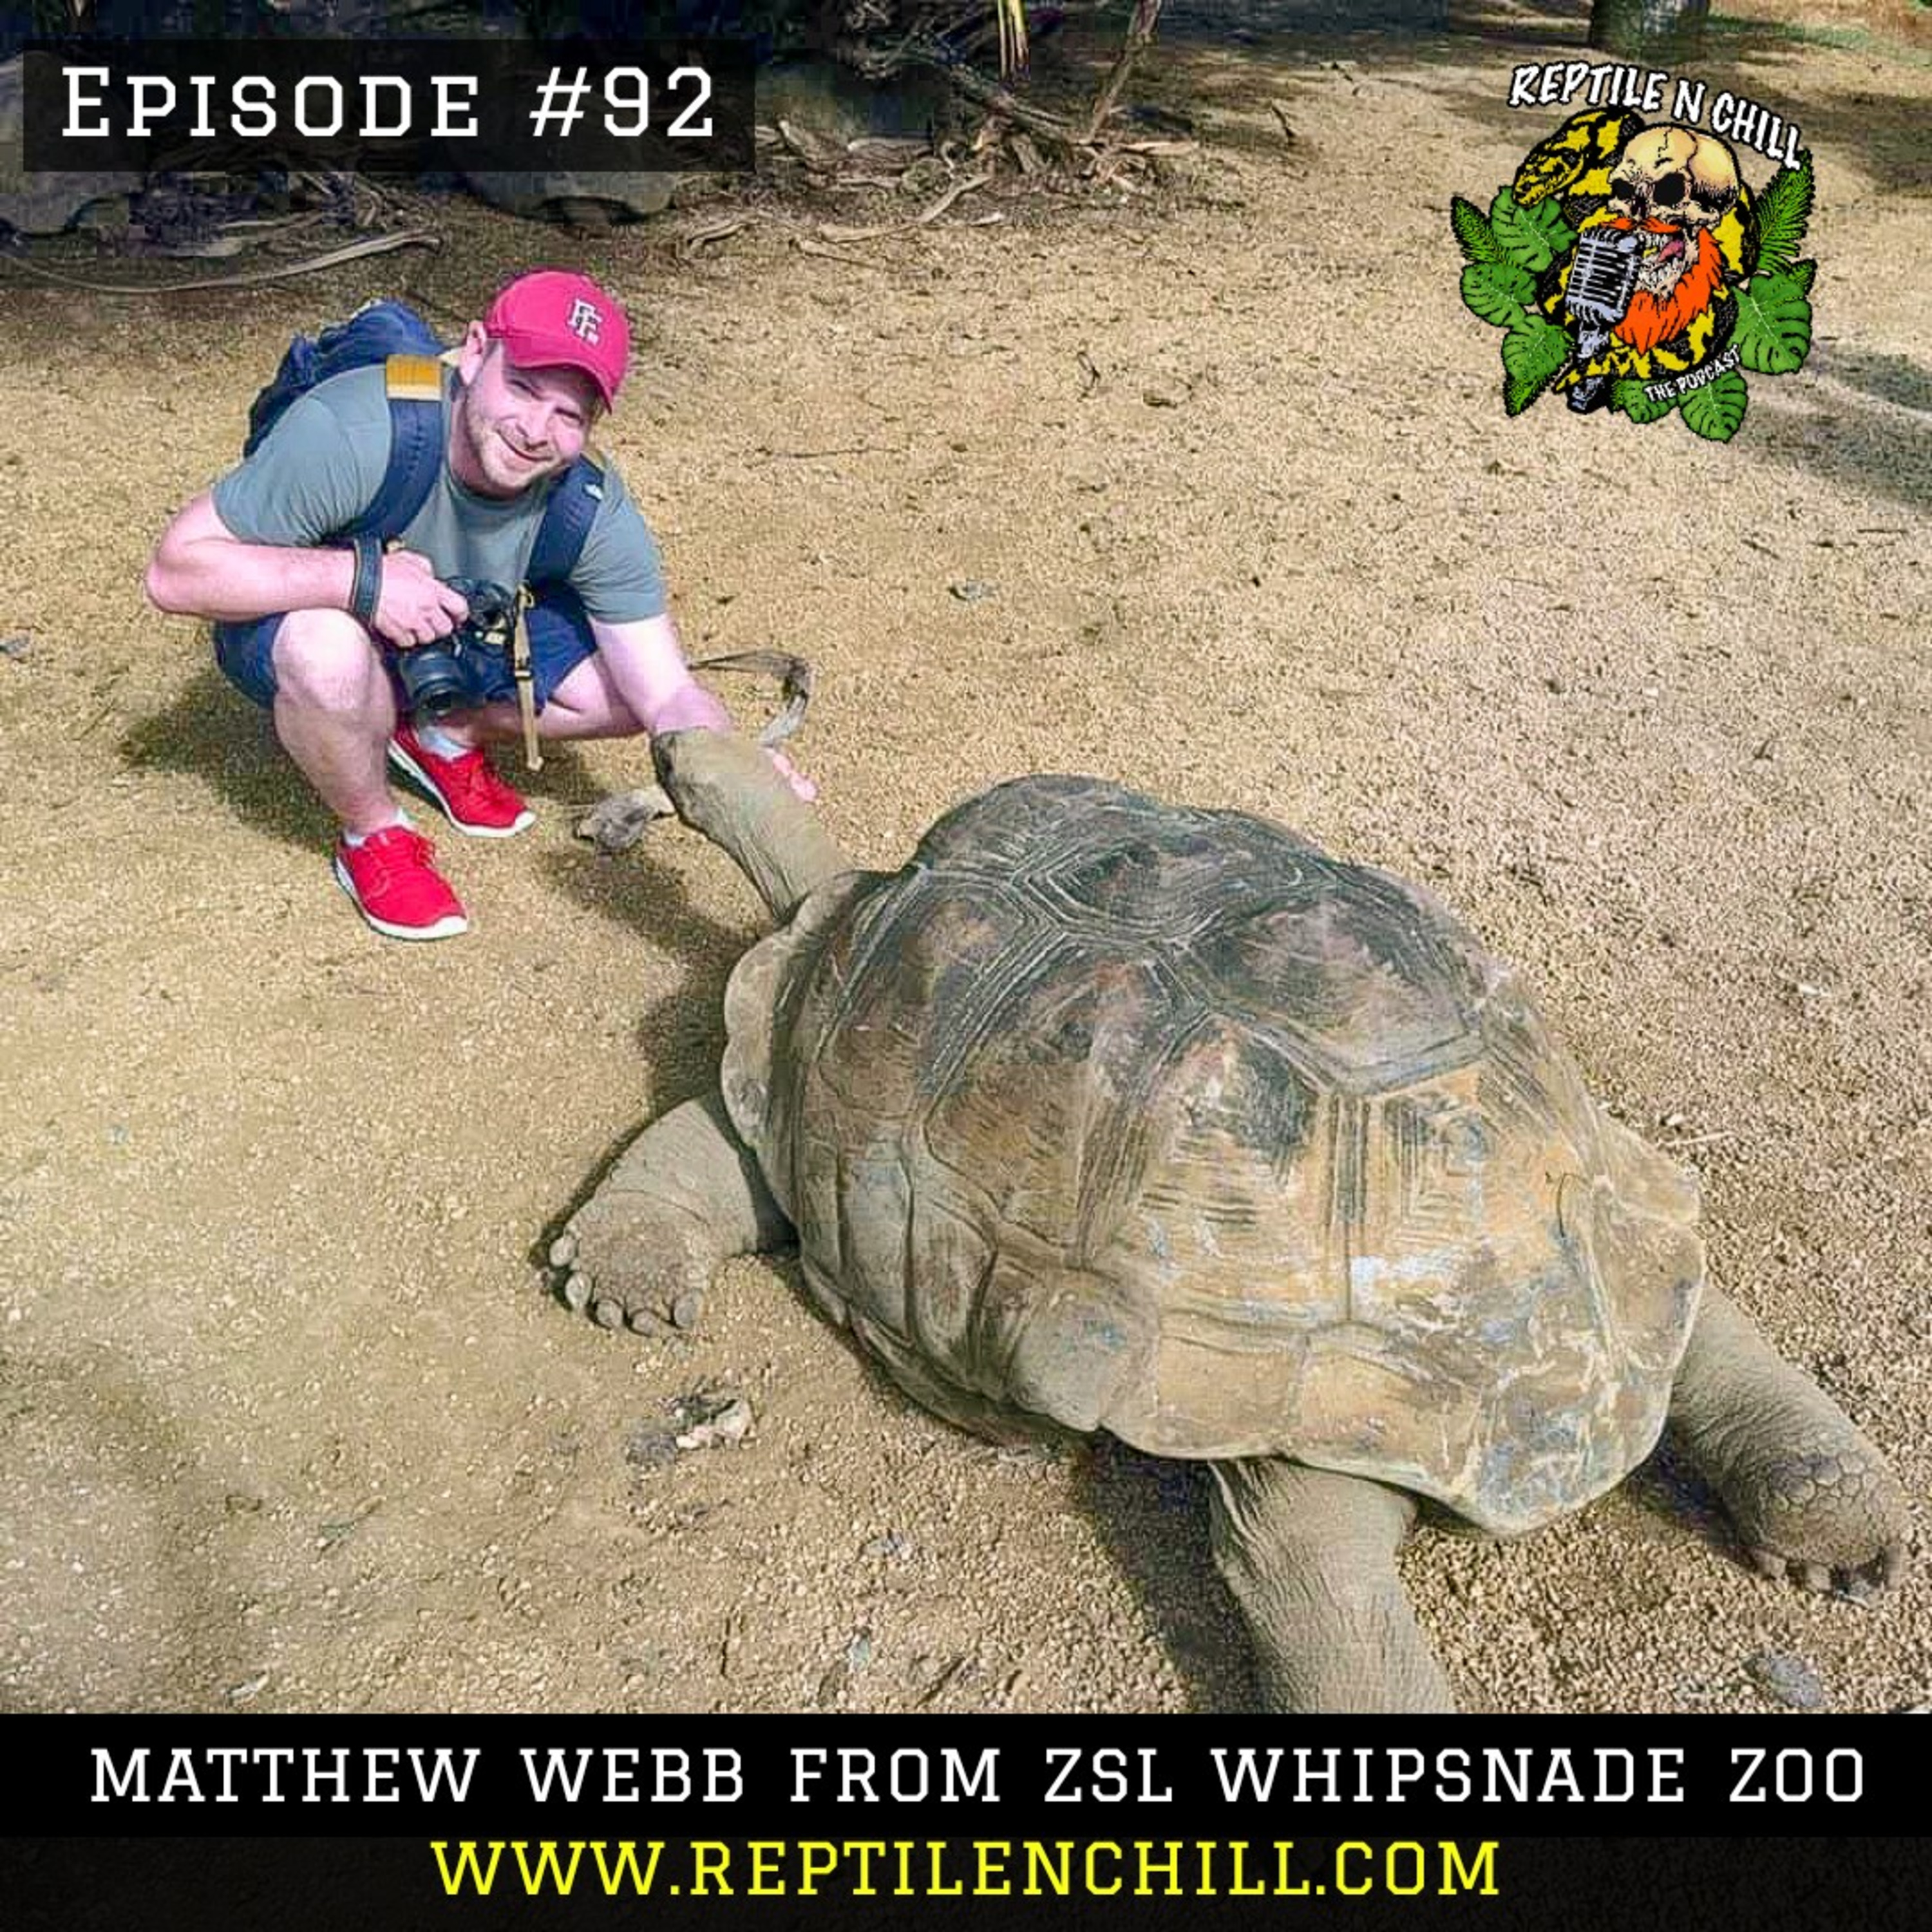 Matthew Webb from ZSL Whipsnade Zoo, Covid-19 zoo related issues - 92 Reptile n Chill